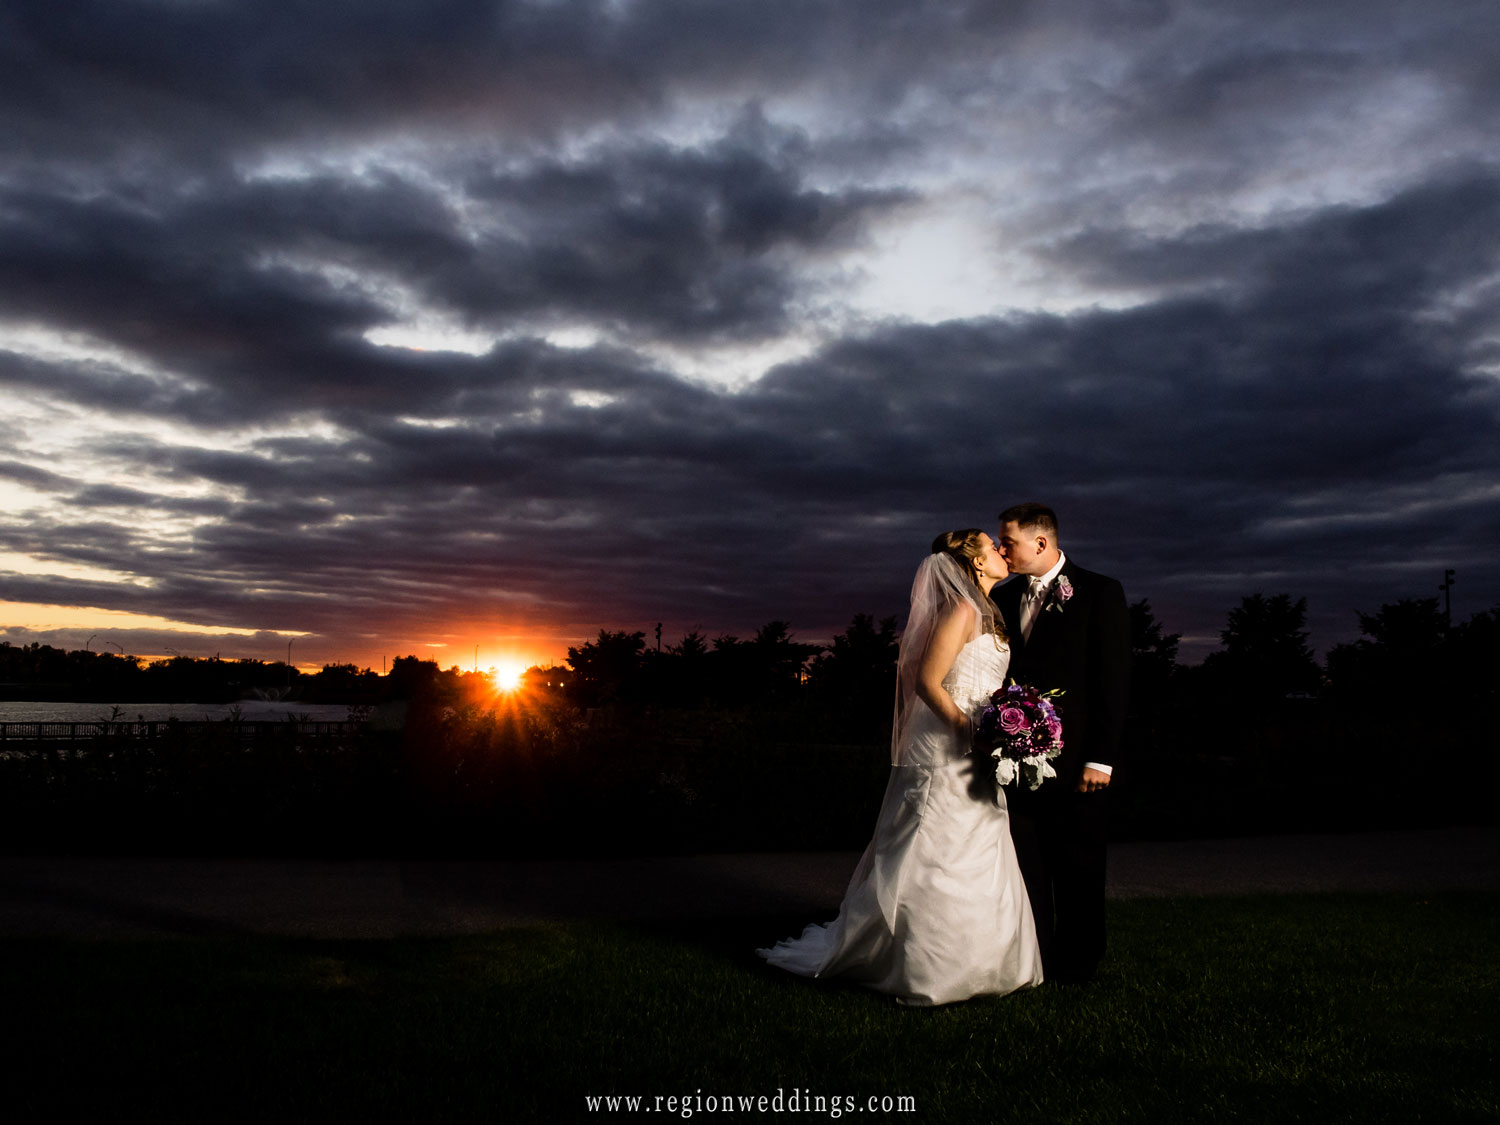 A romantic kiss at sunset at Centennial Park in Munster, Indiana.